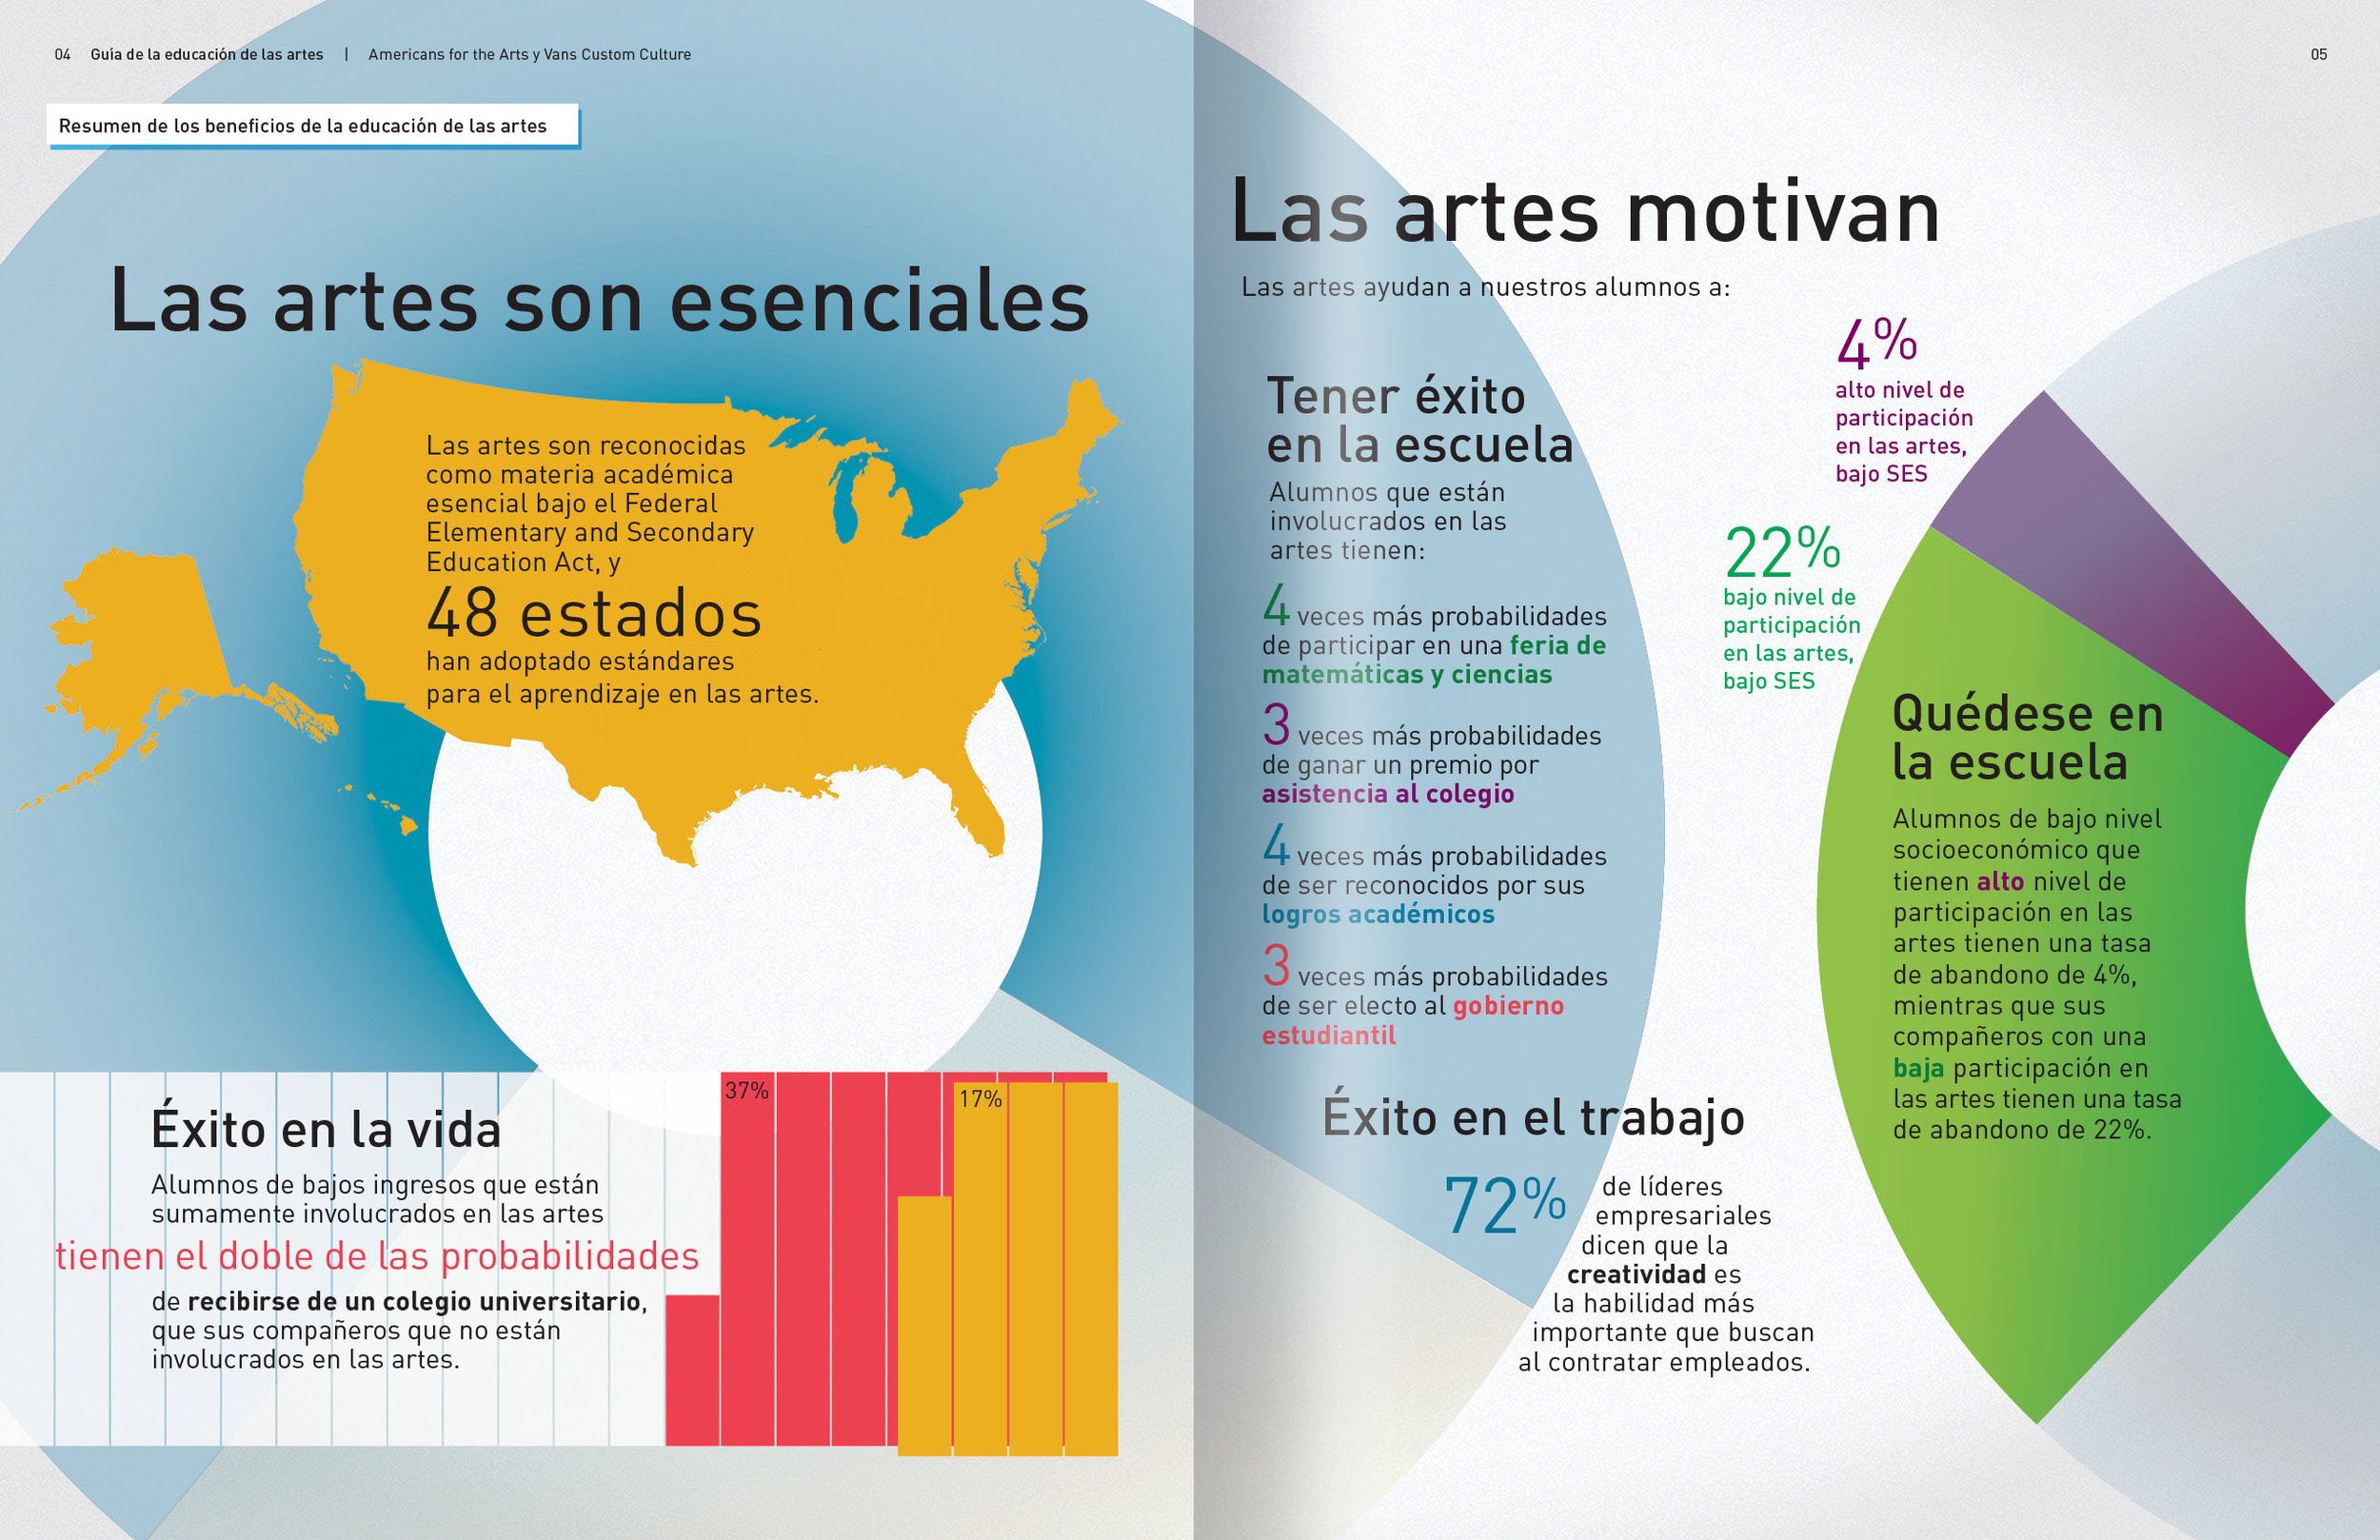 Two of the e-books were translated into Spanish.